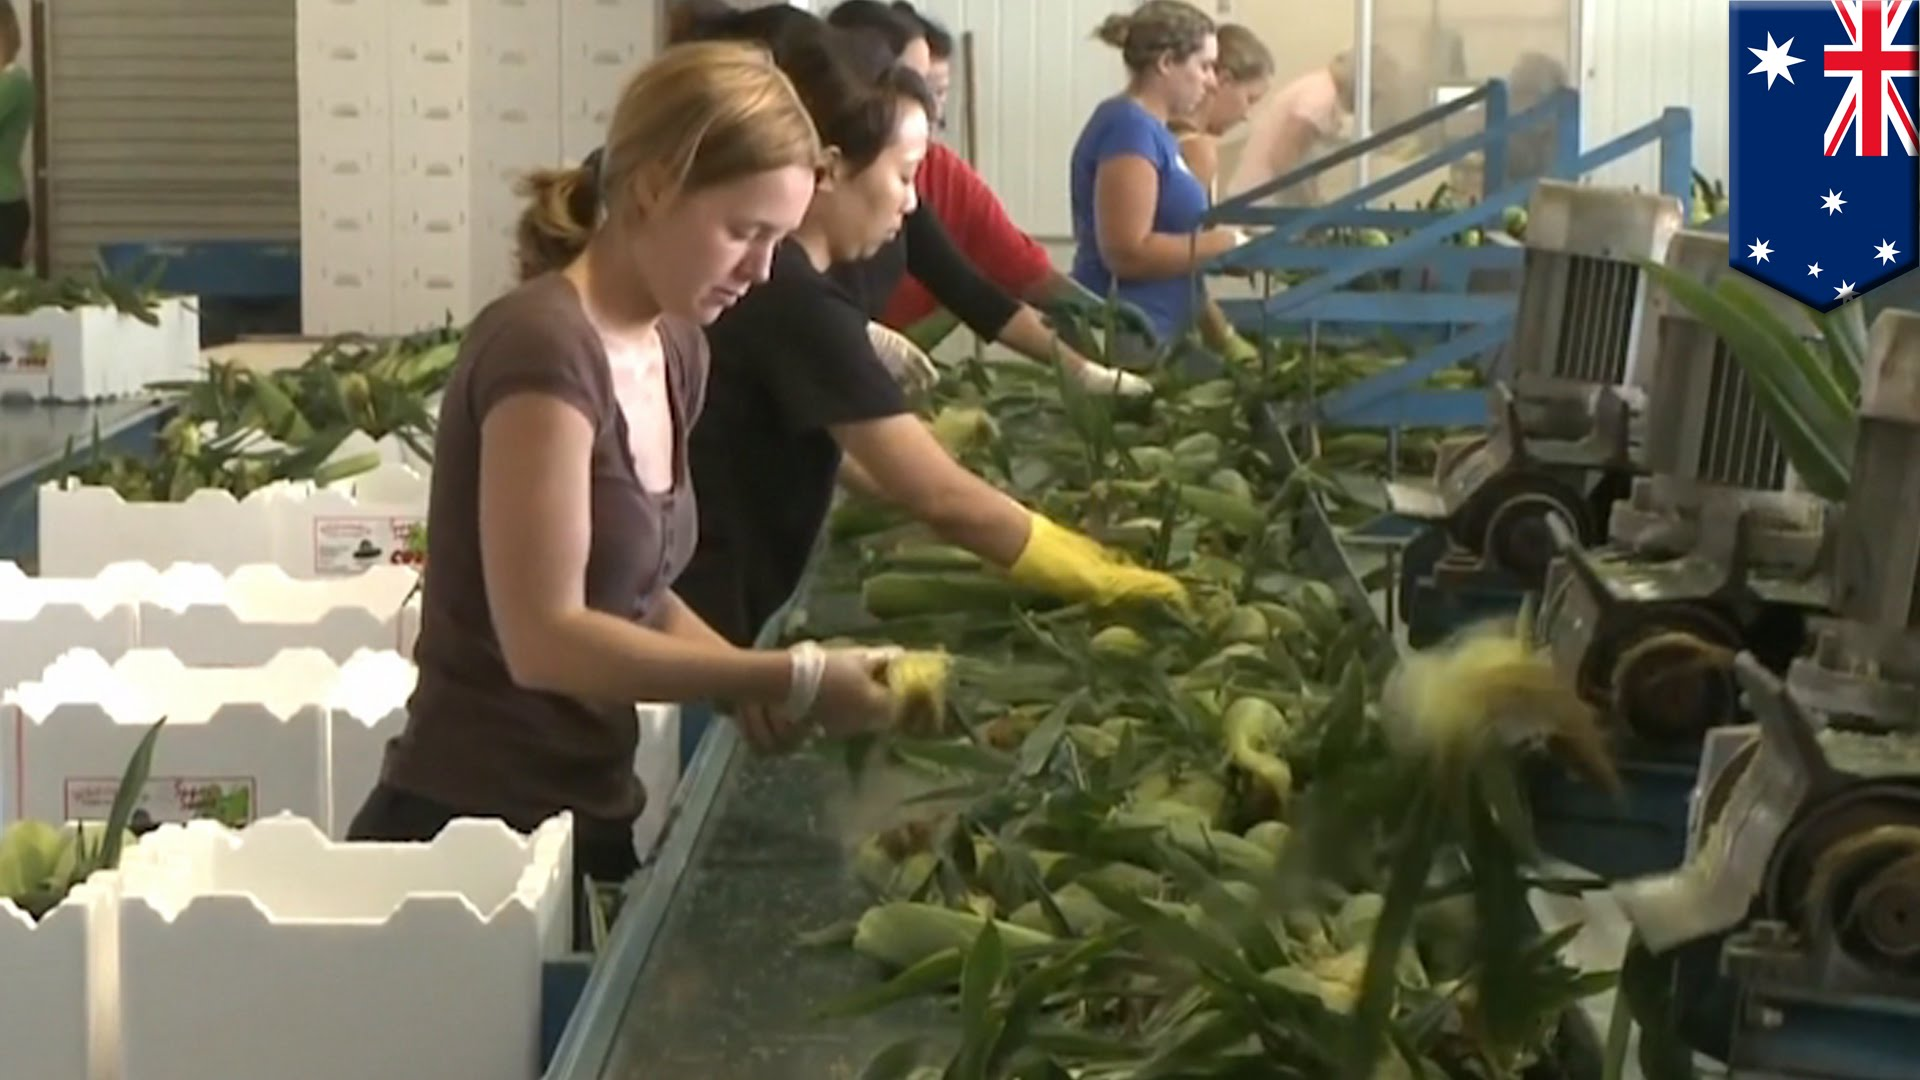 tax changes to working holiday visas will affect fruit picking and farming industry in Australia